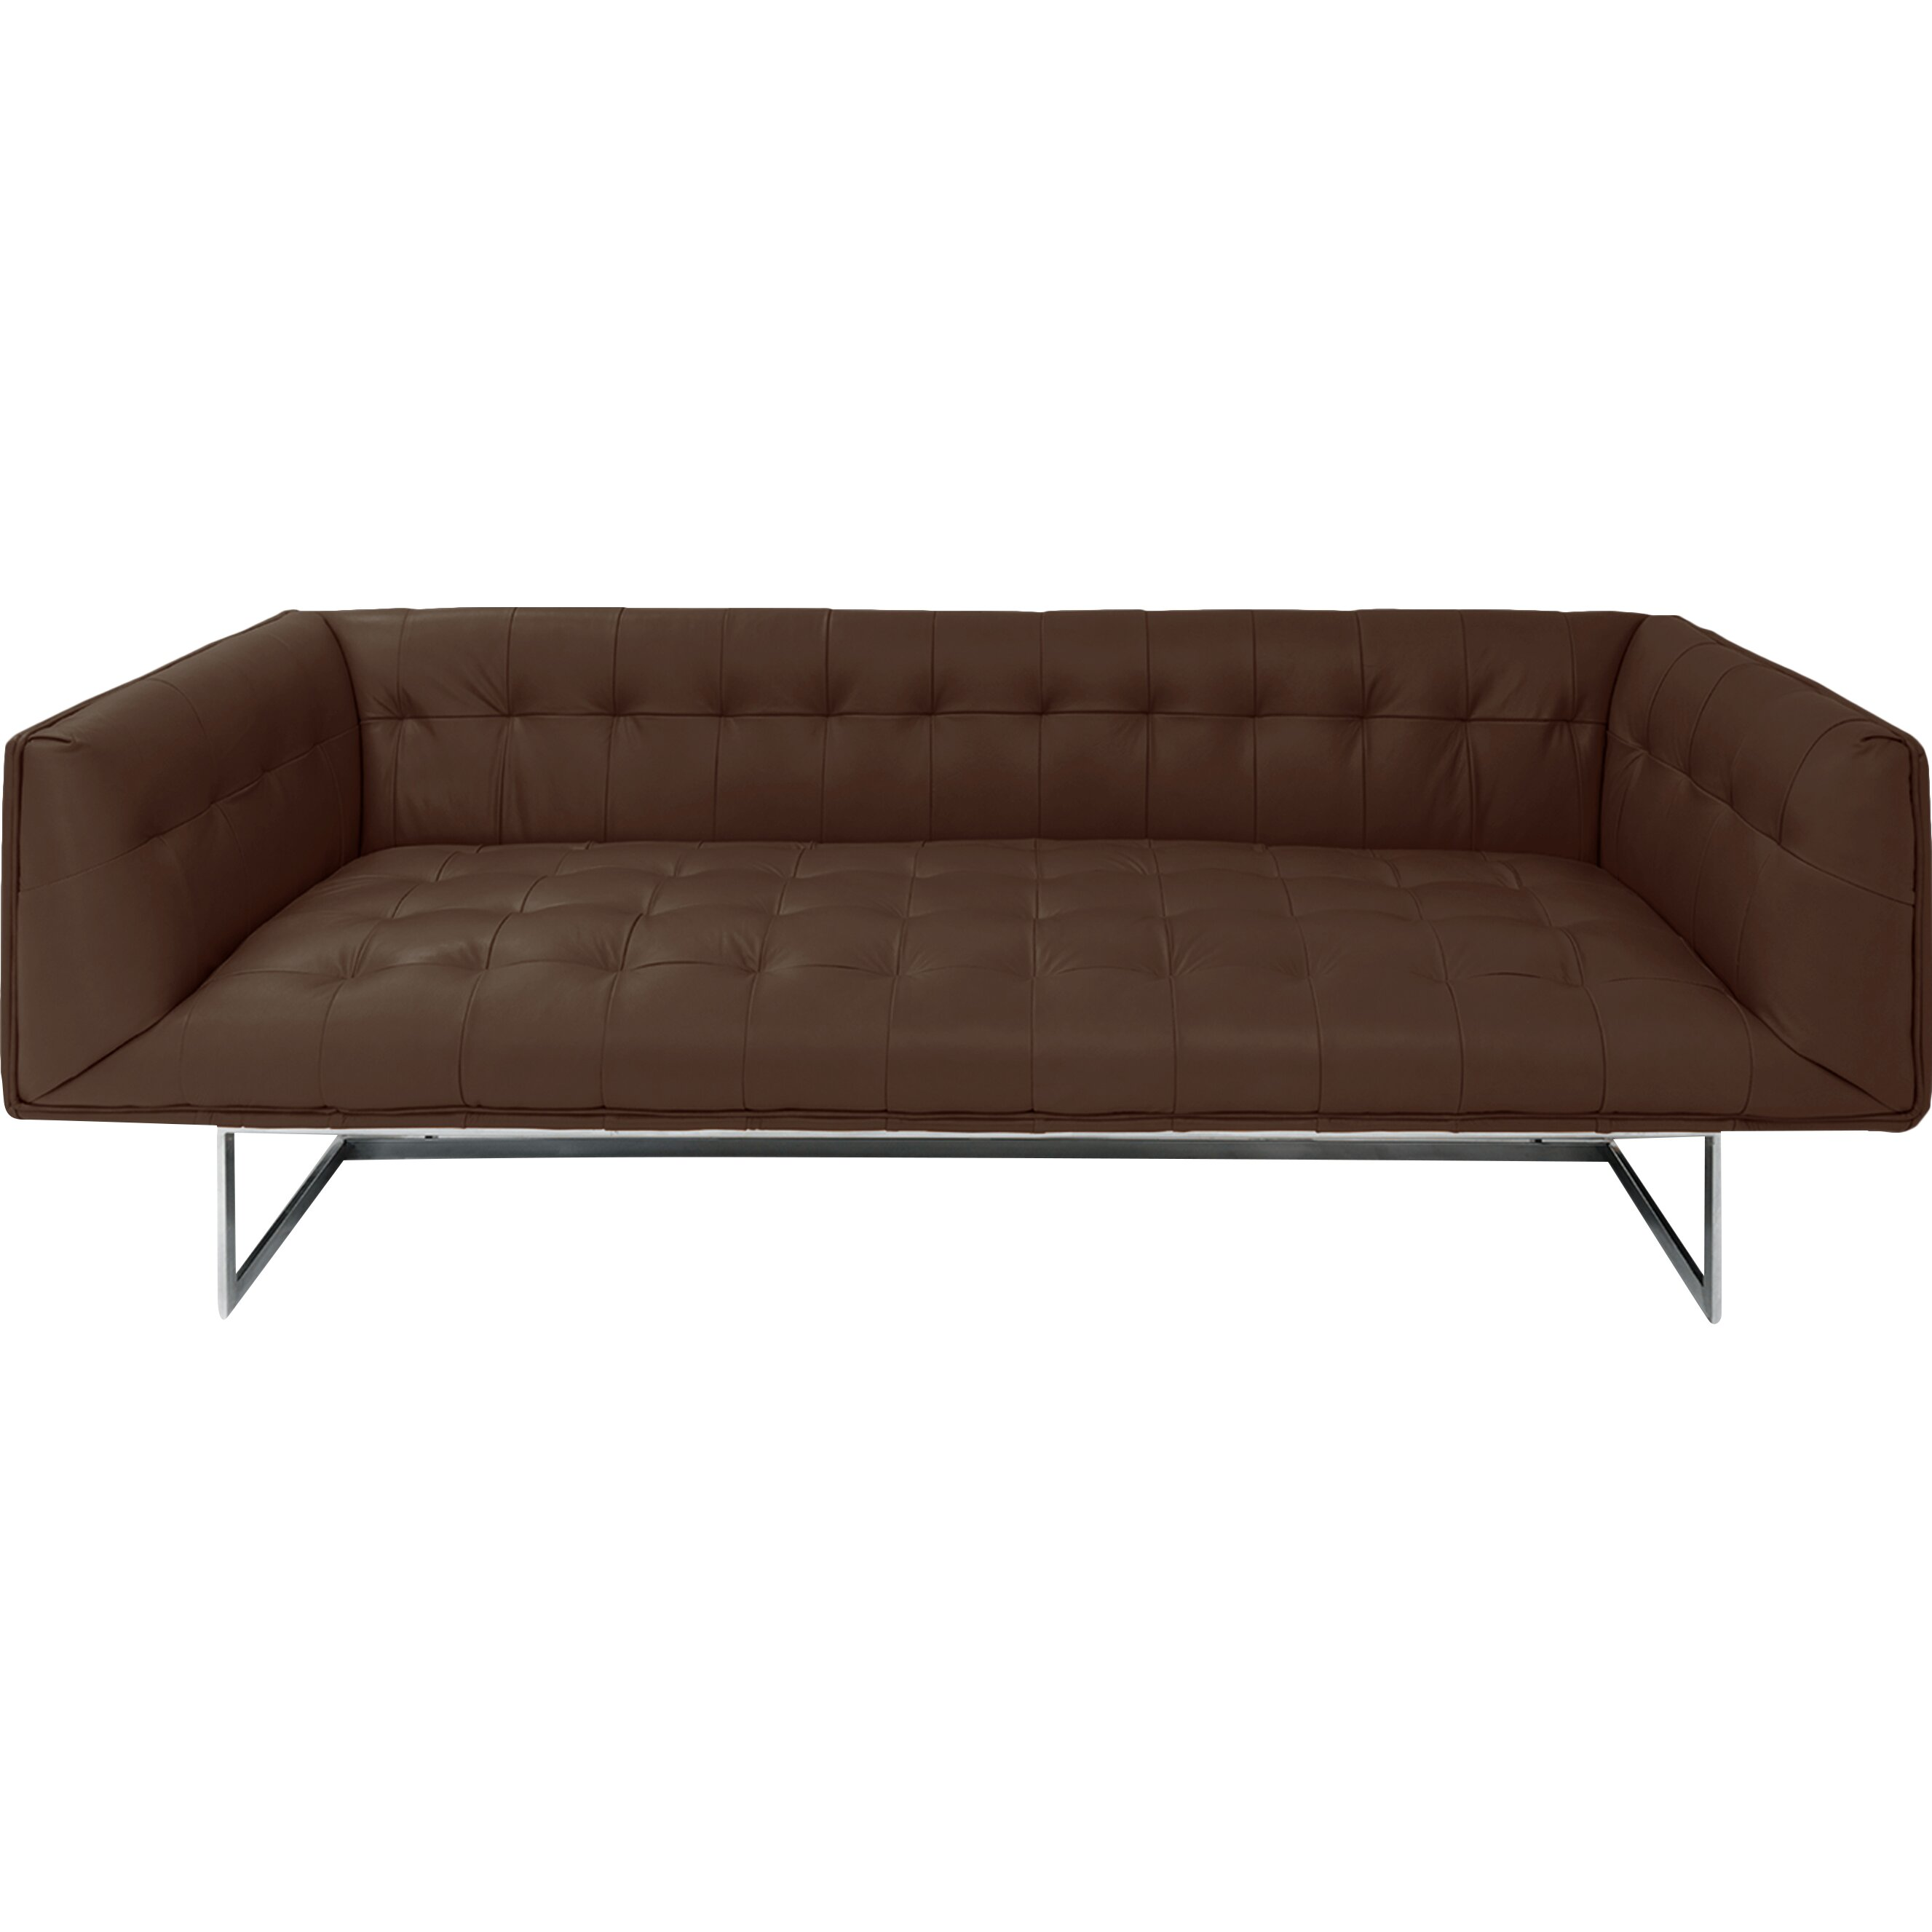 ^ Kardiel dward Mid entury Modern Leather Sofa & eviews Wayfair